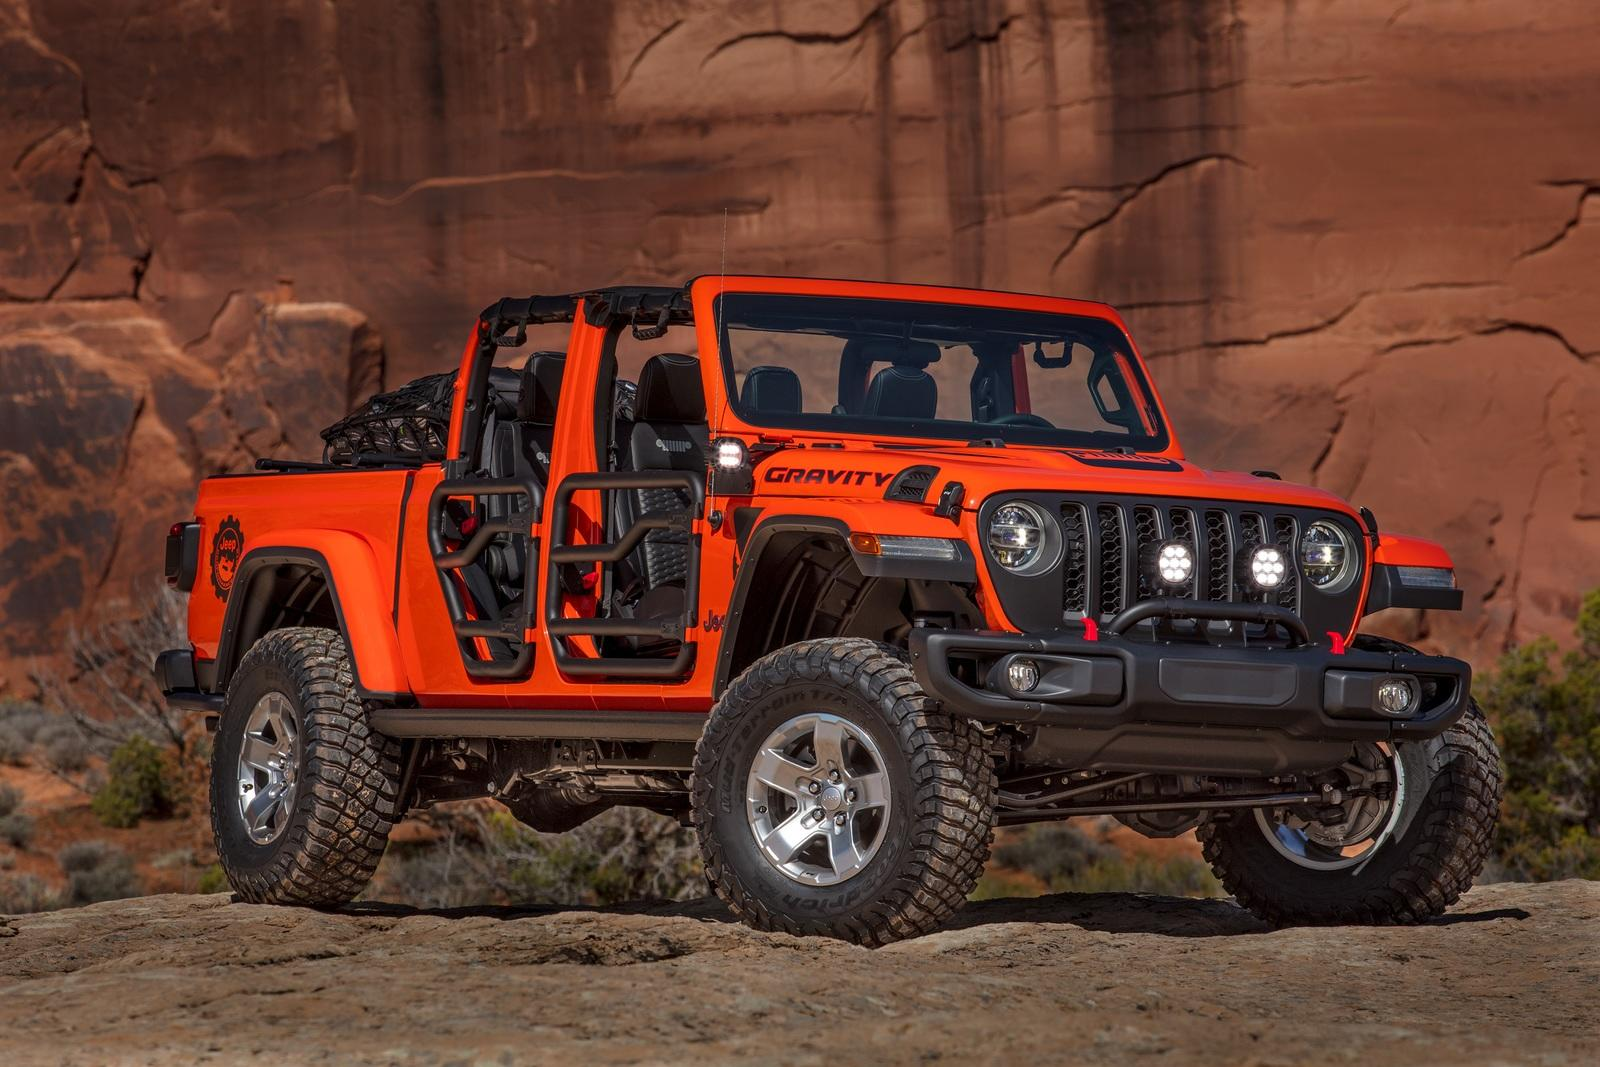 Lifted Jeep Wrangler >> 2019 Jeep Gladiator Gravity Concept Pictures, Photos, Wallpapers. | Top Speed